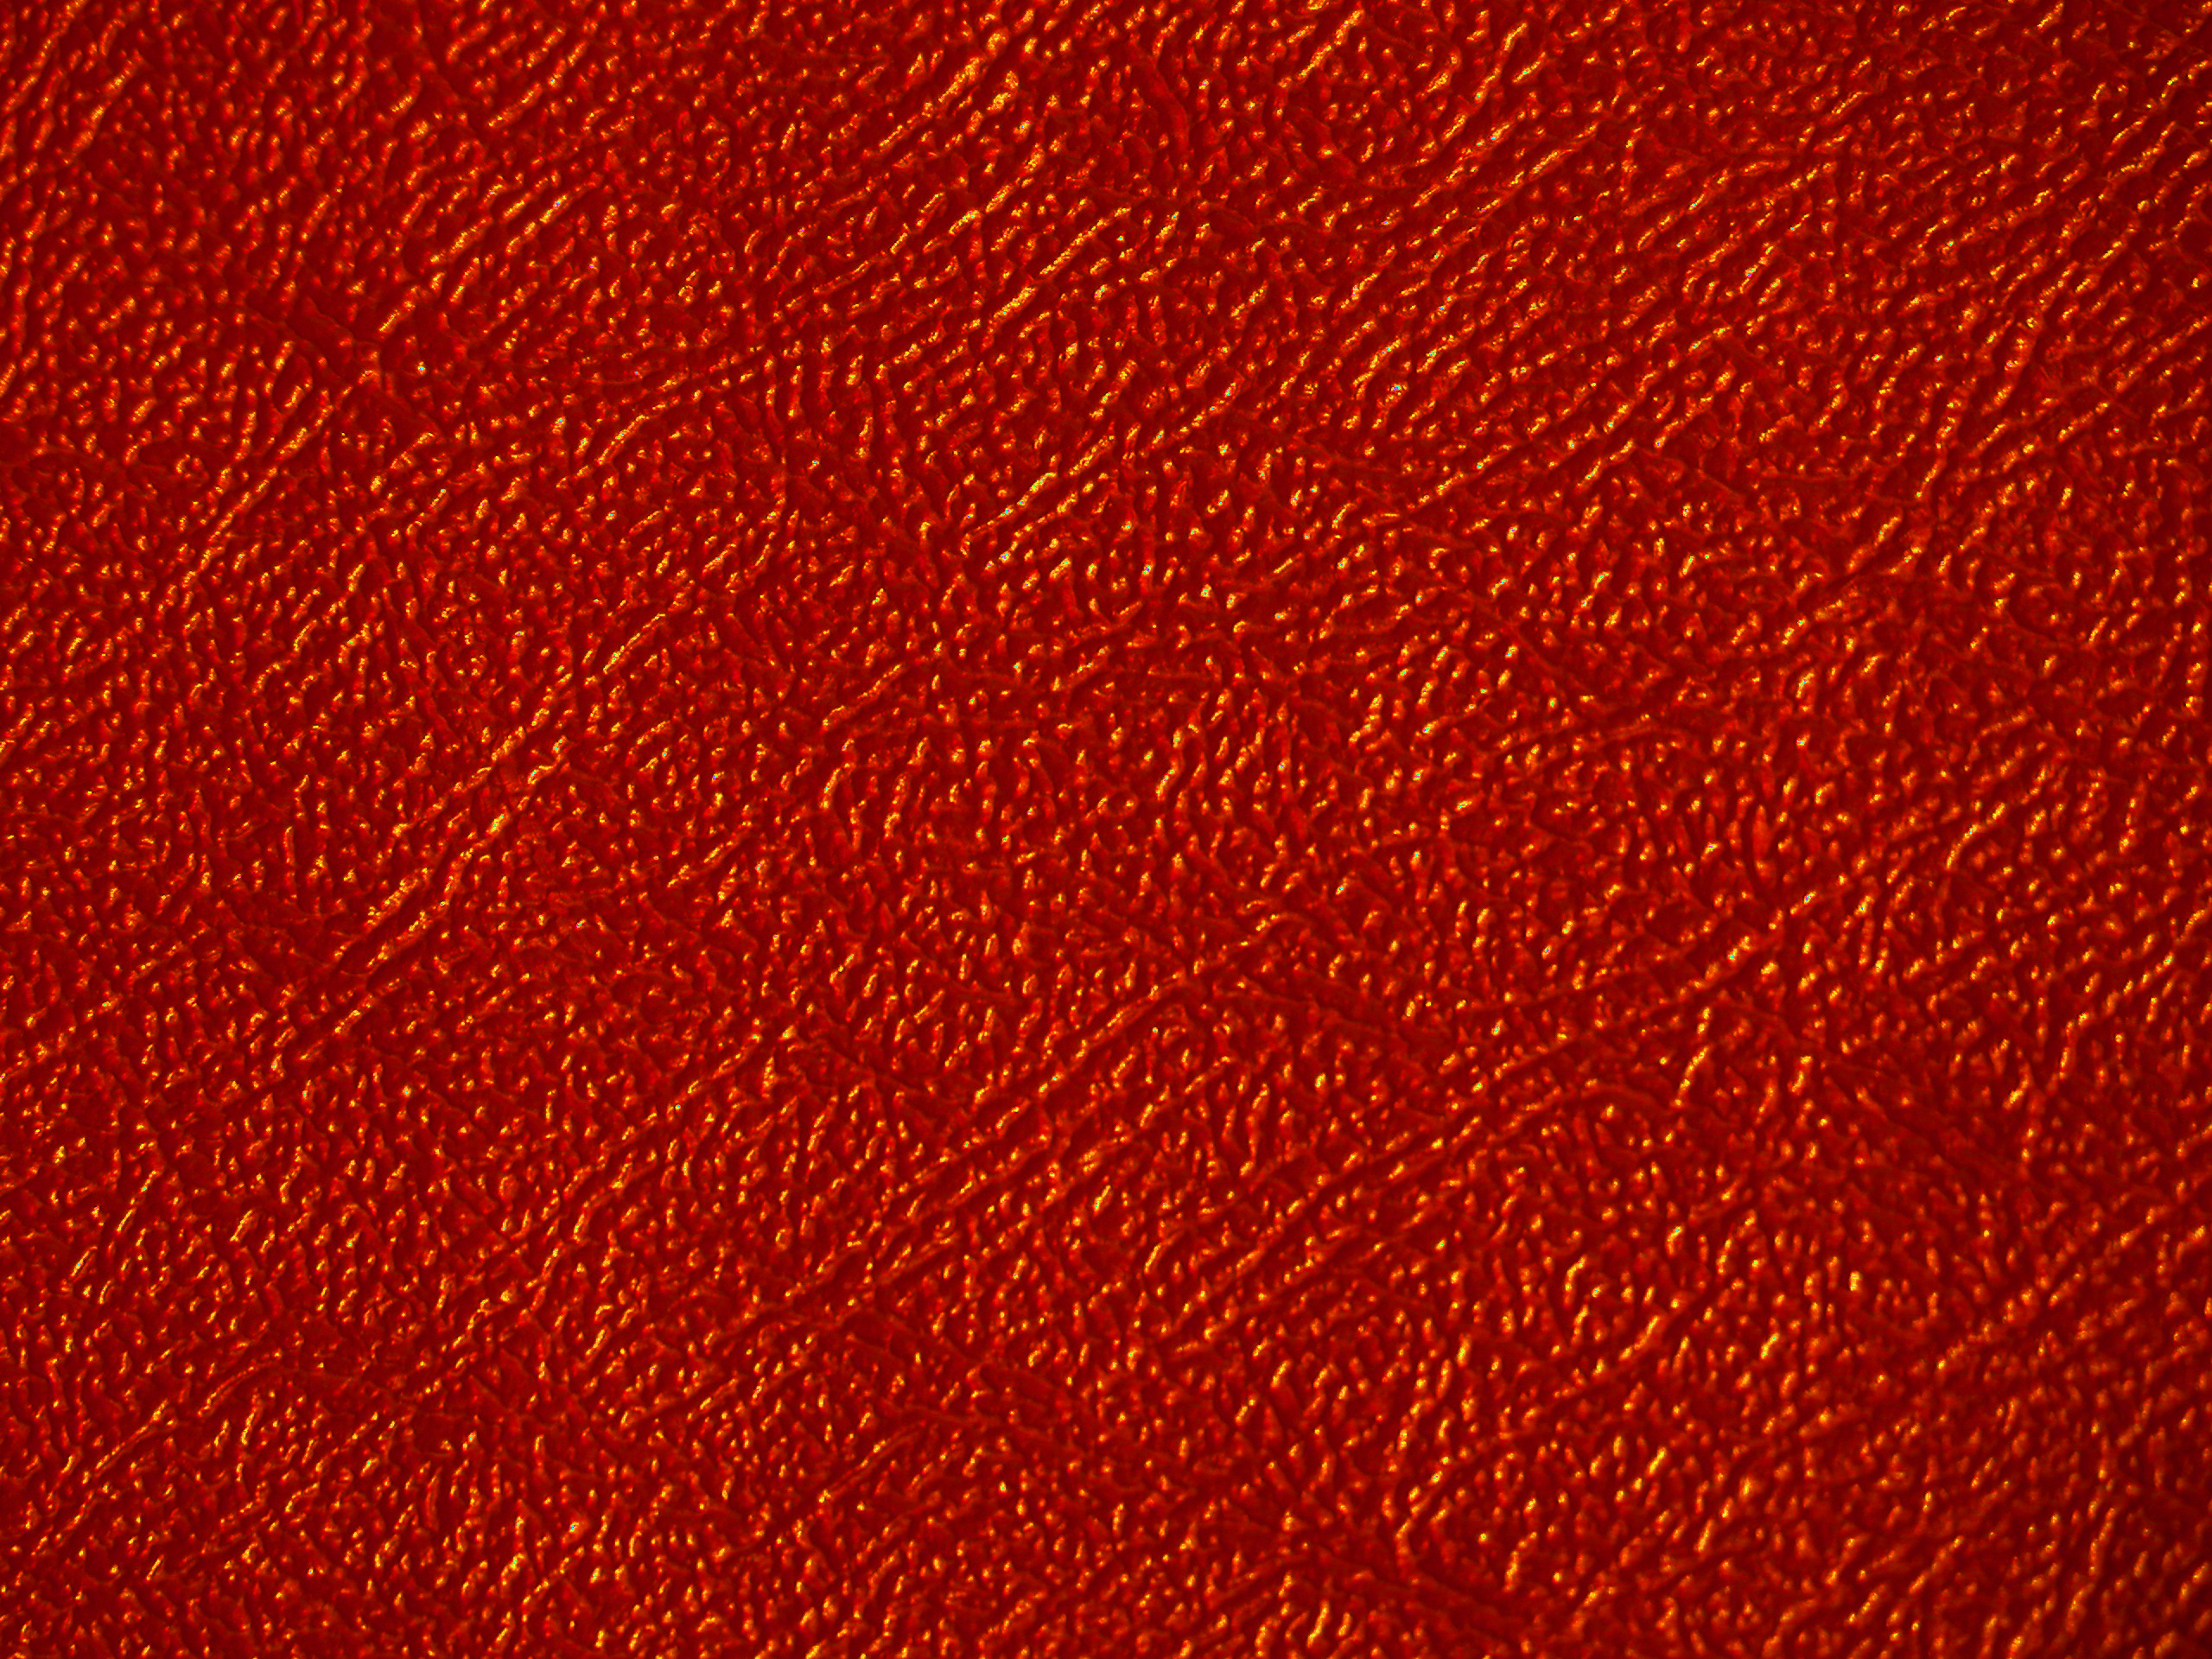 red leather texture hot girls wallpaper. Black Bedroom Furniture Sets. Home Design Ideas